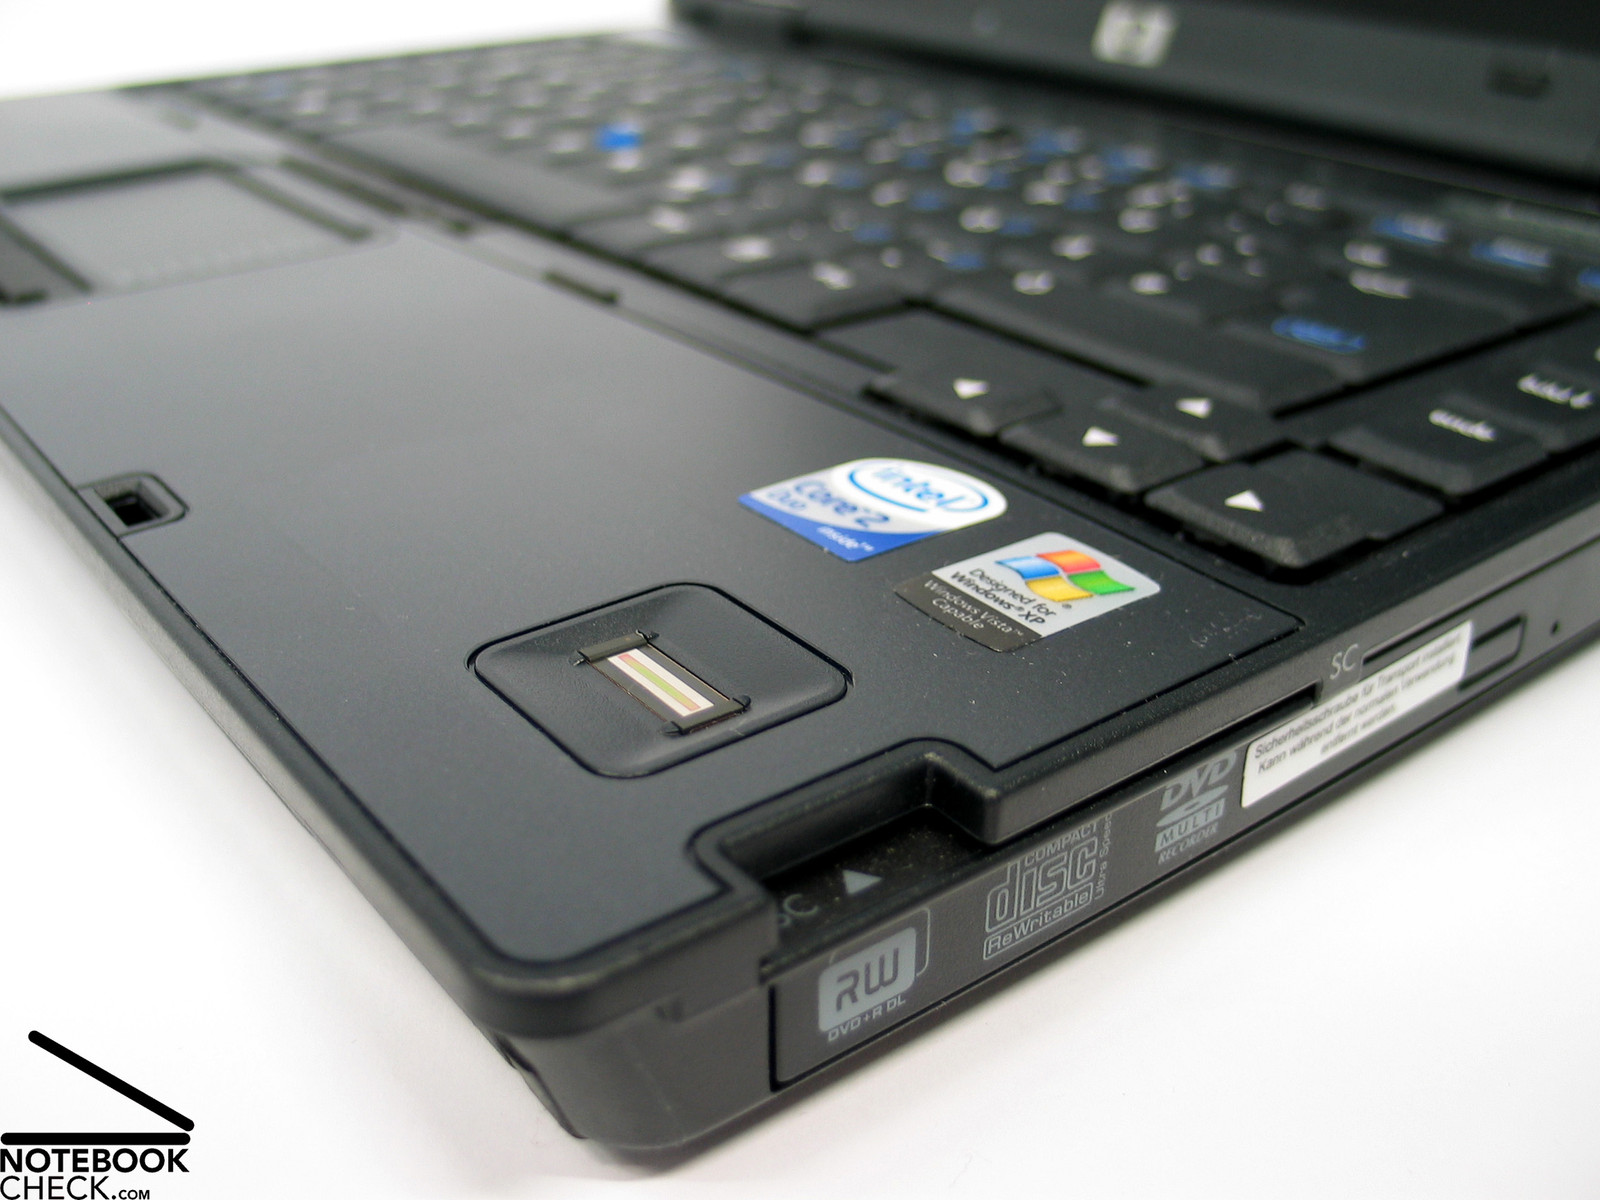 HP Compaq nc6400 Notebook Seagate HDD Driver Download